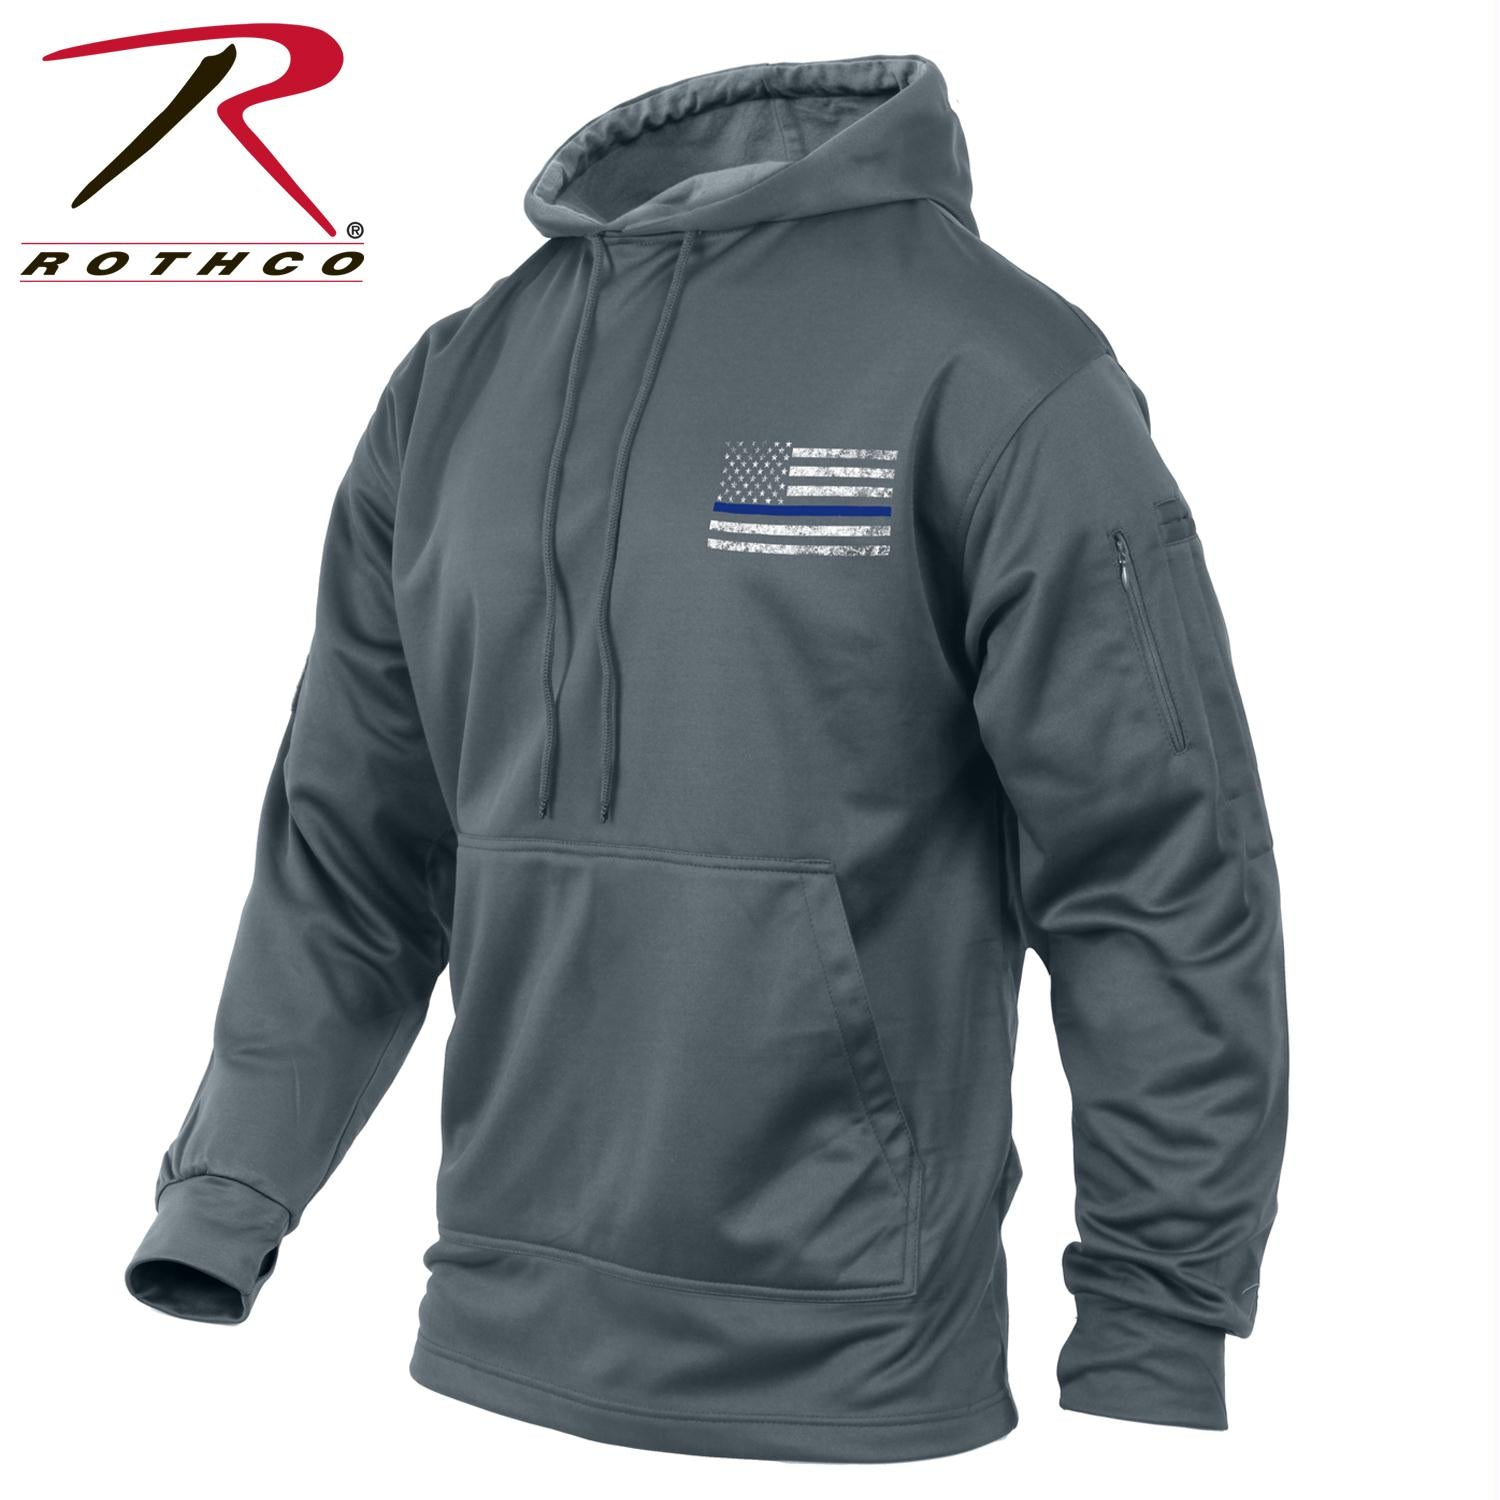 Rothco Thin Blue Line Concealed Carry Hoodie - Grey / S